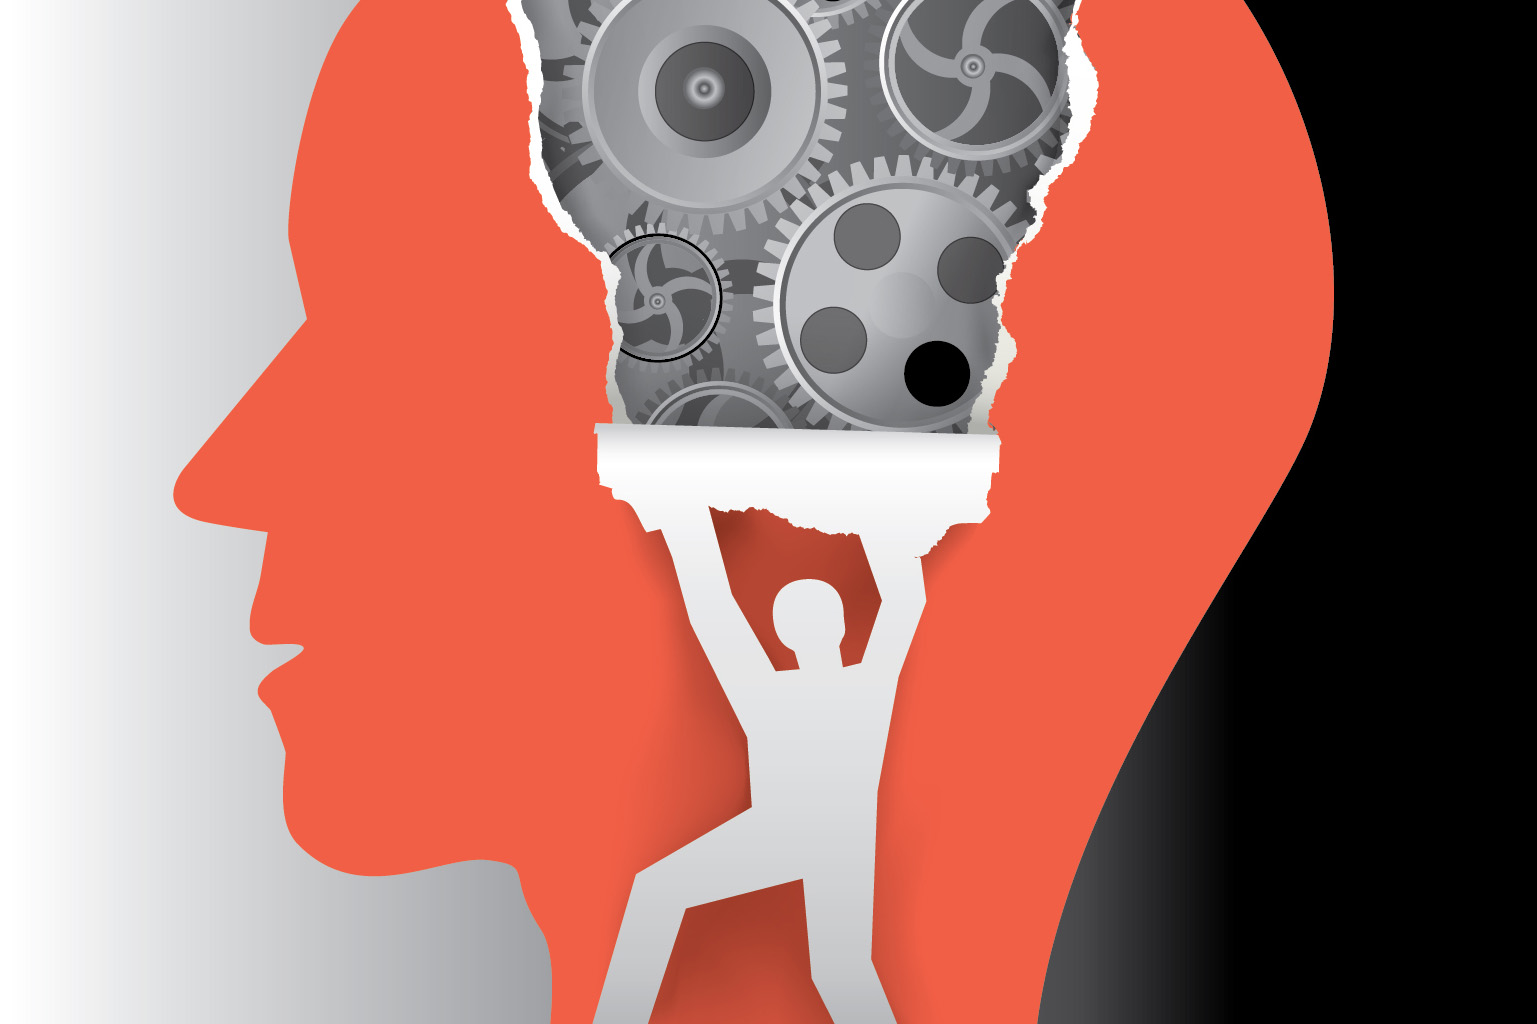 An illustration of a head with gears inside to illustrate a metaphor for criminal psychology.